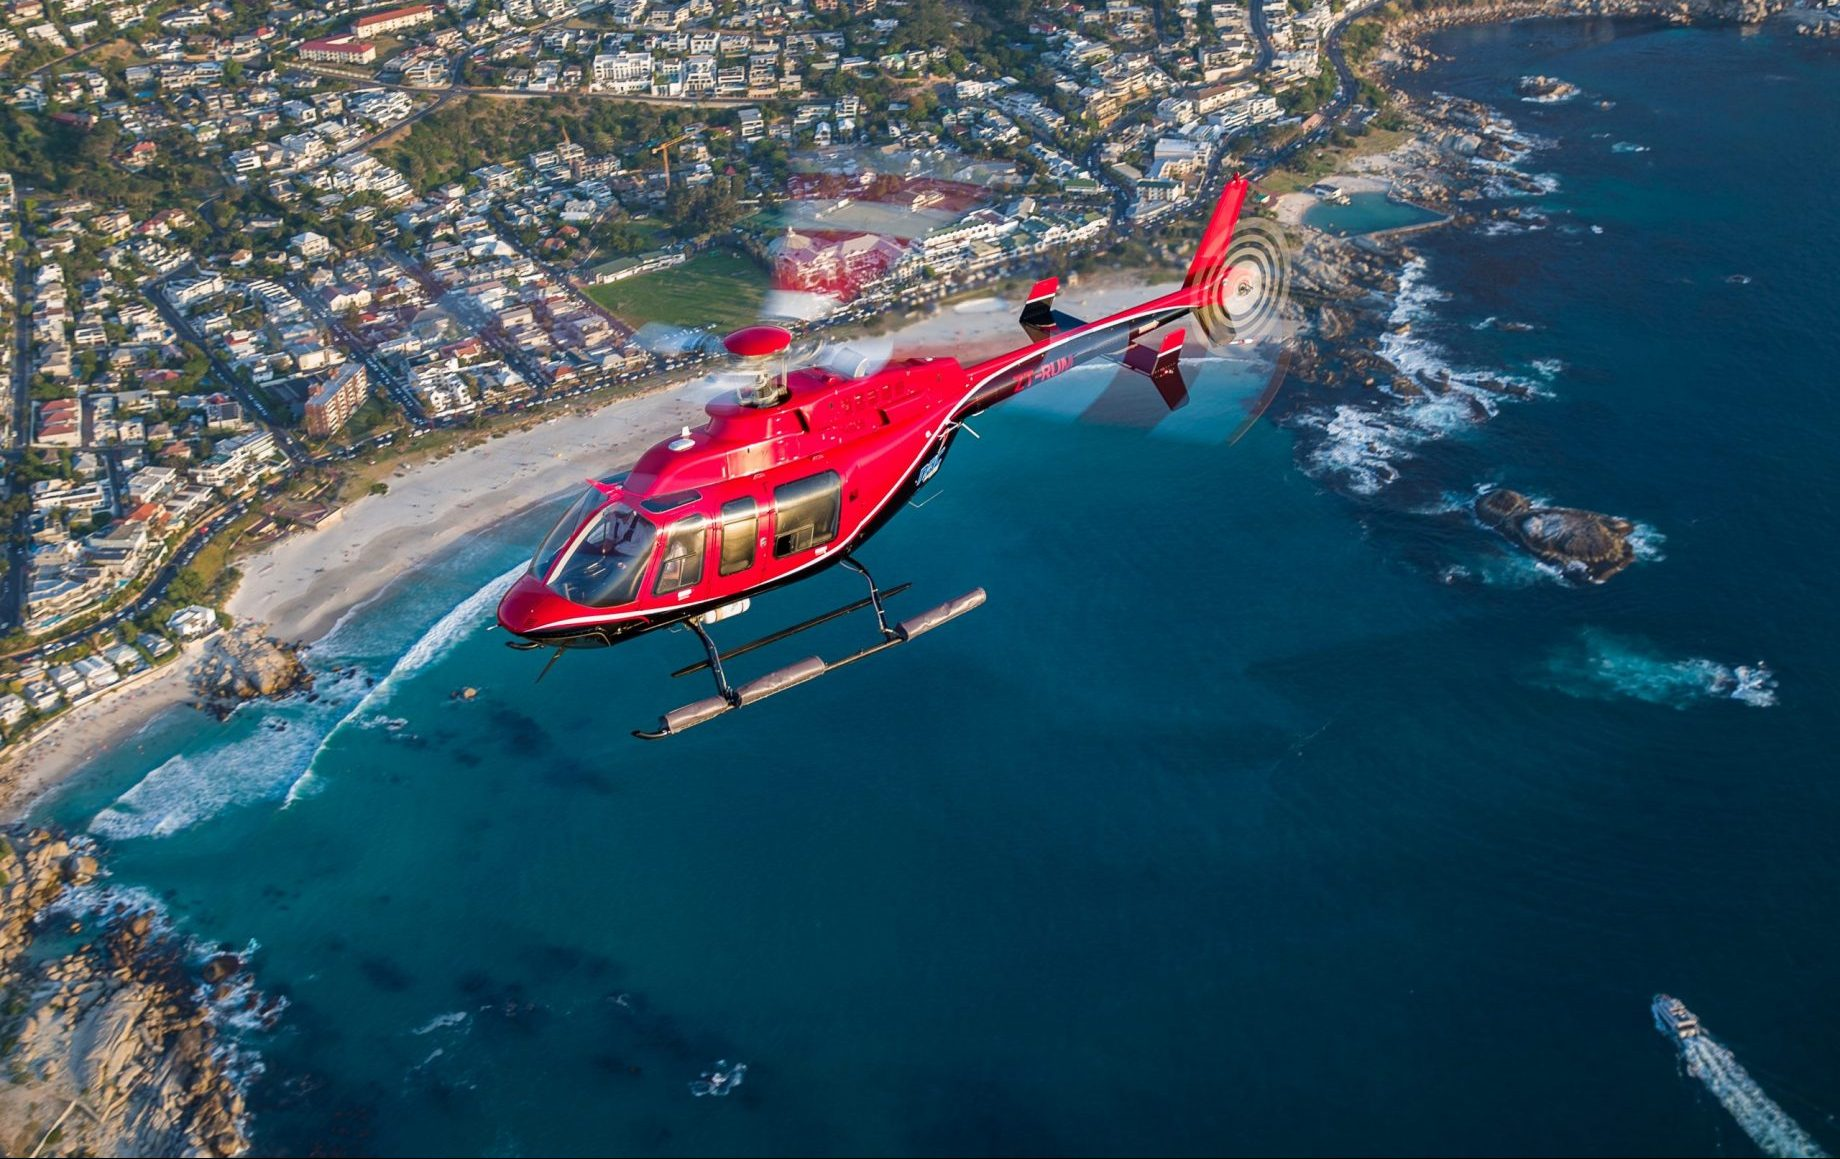 A helicopter over the coast